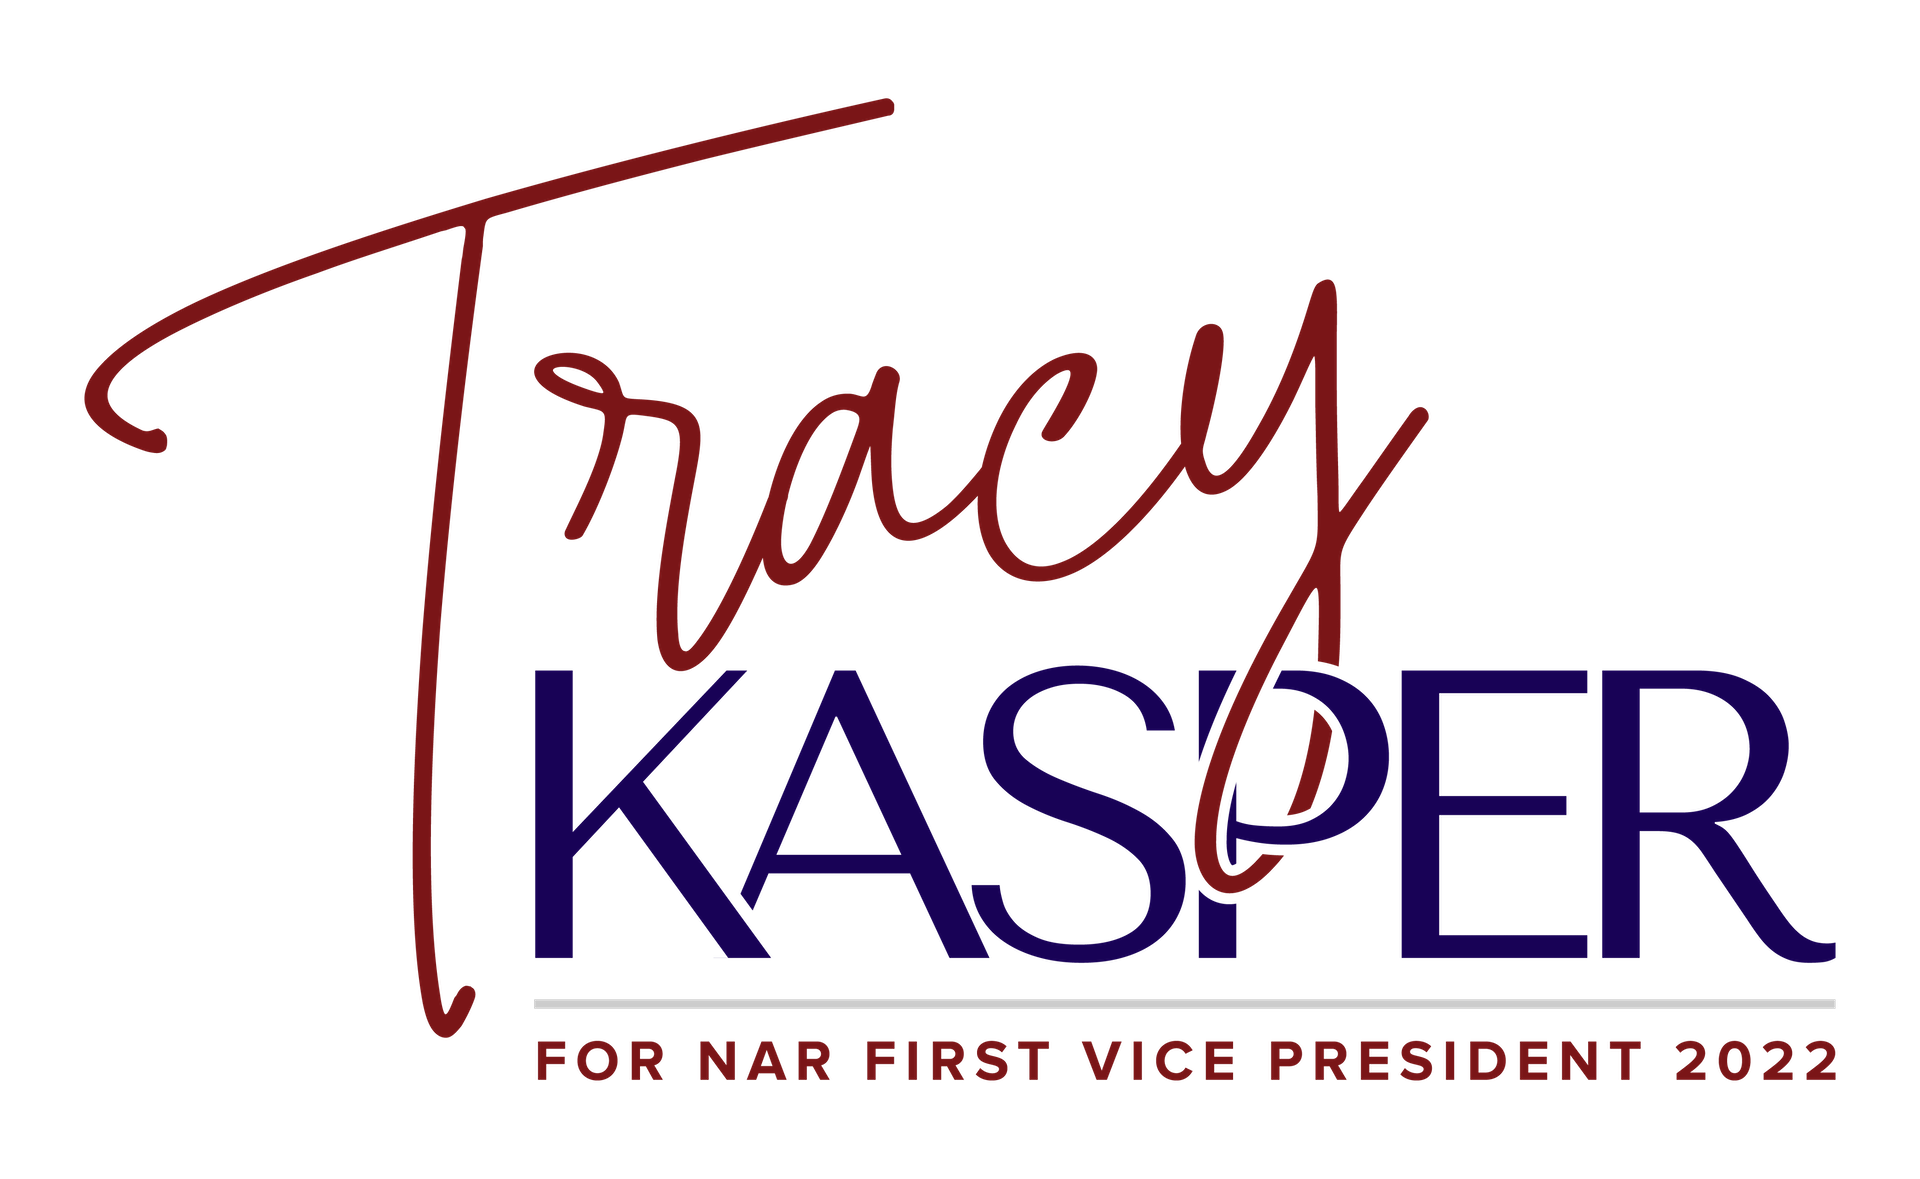 Tracy Kasper for NAR